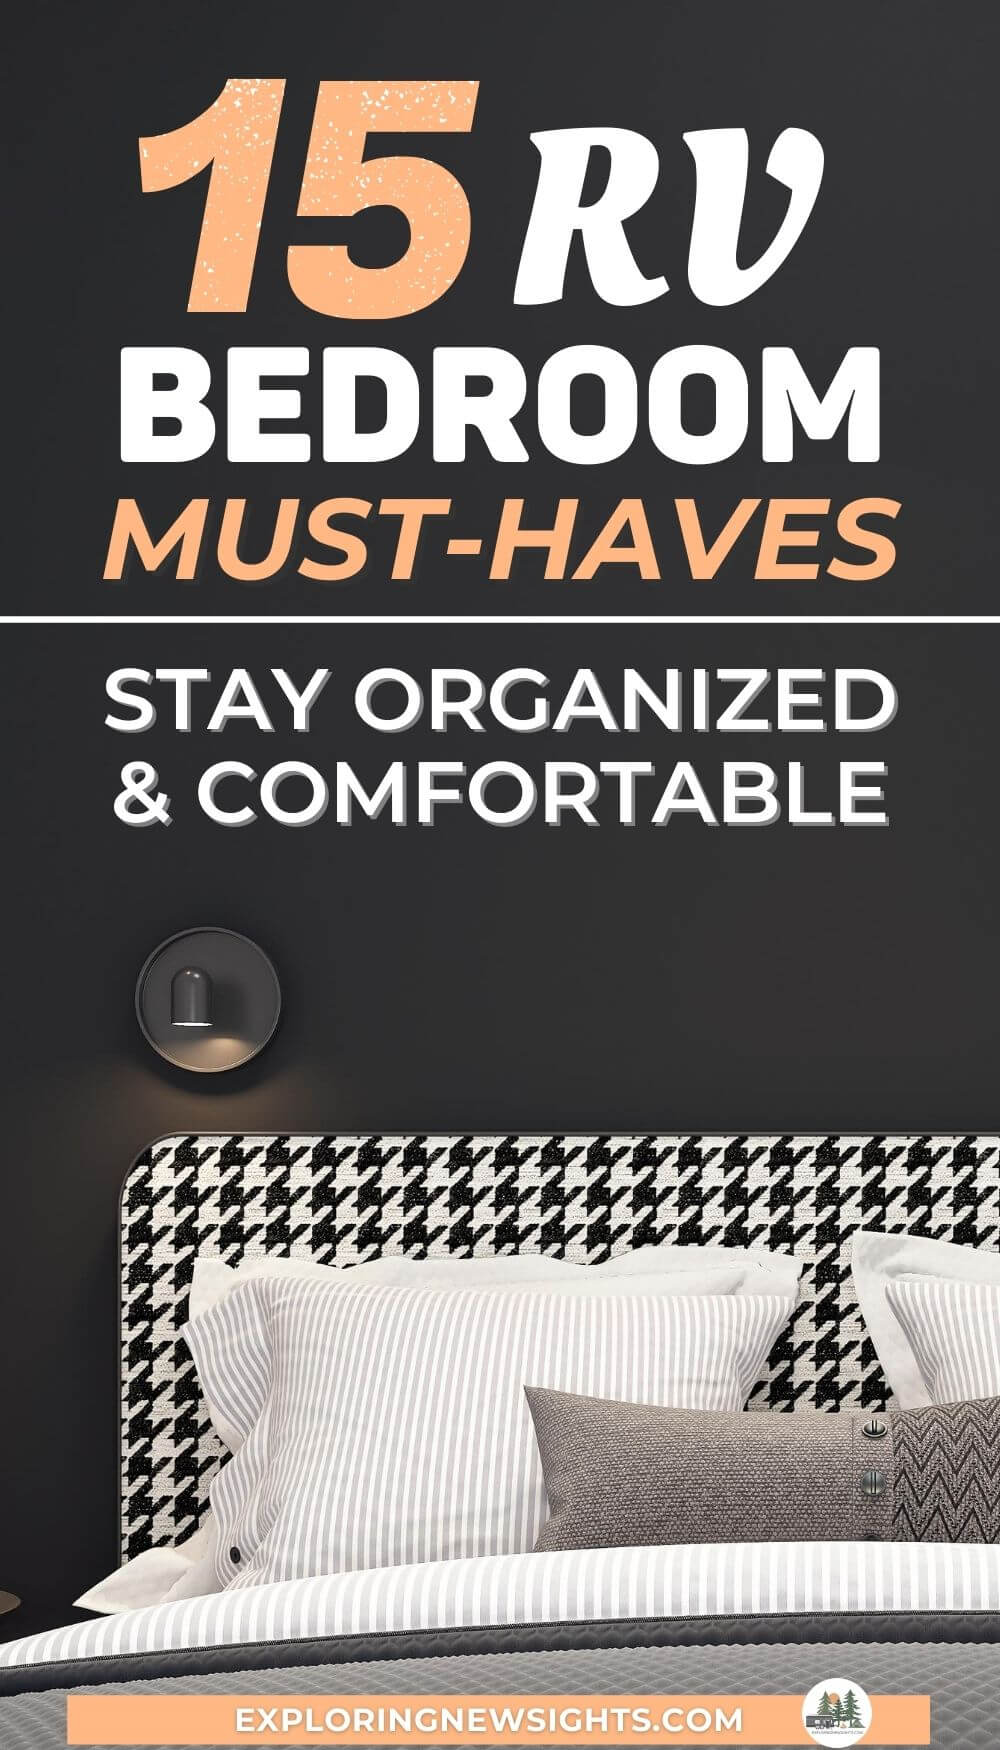 RV BEDROOM MUST-HAVES RV BEDROOM MUST-HAVES